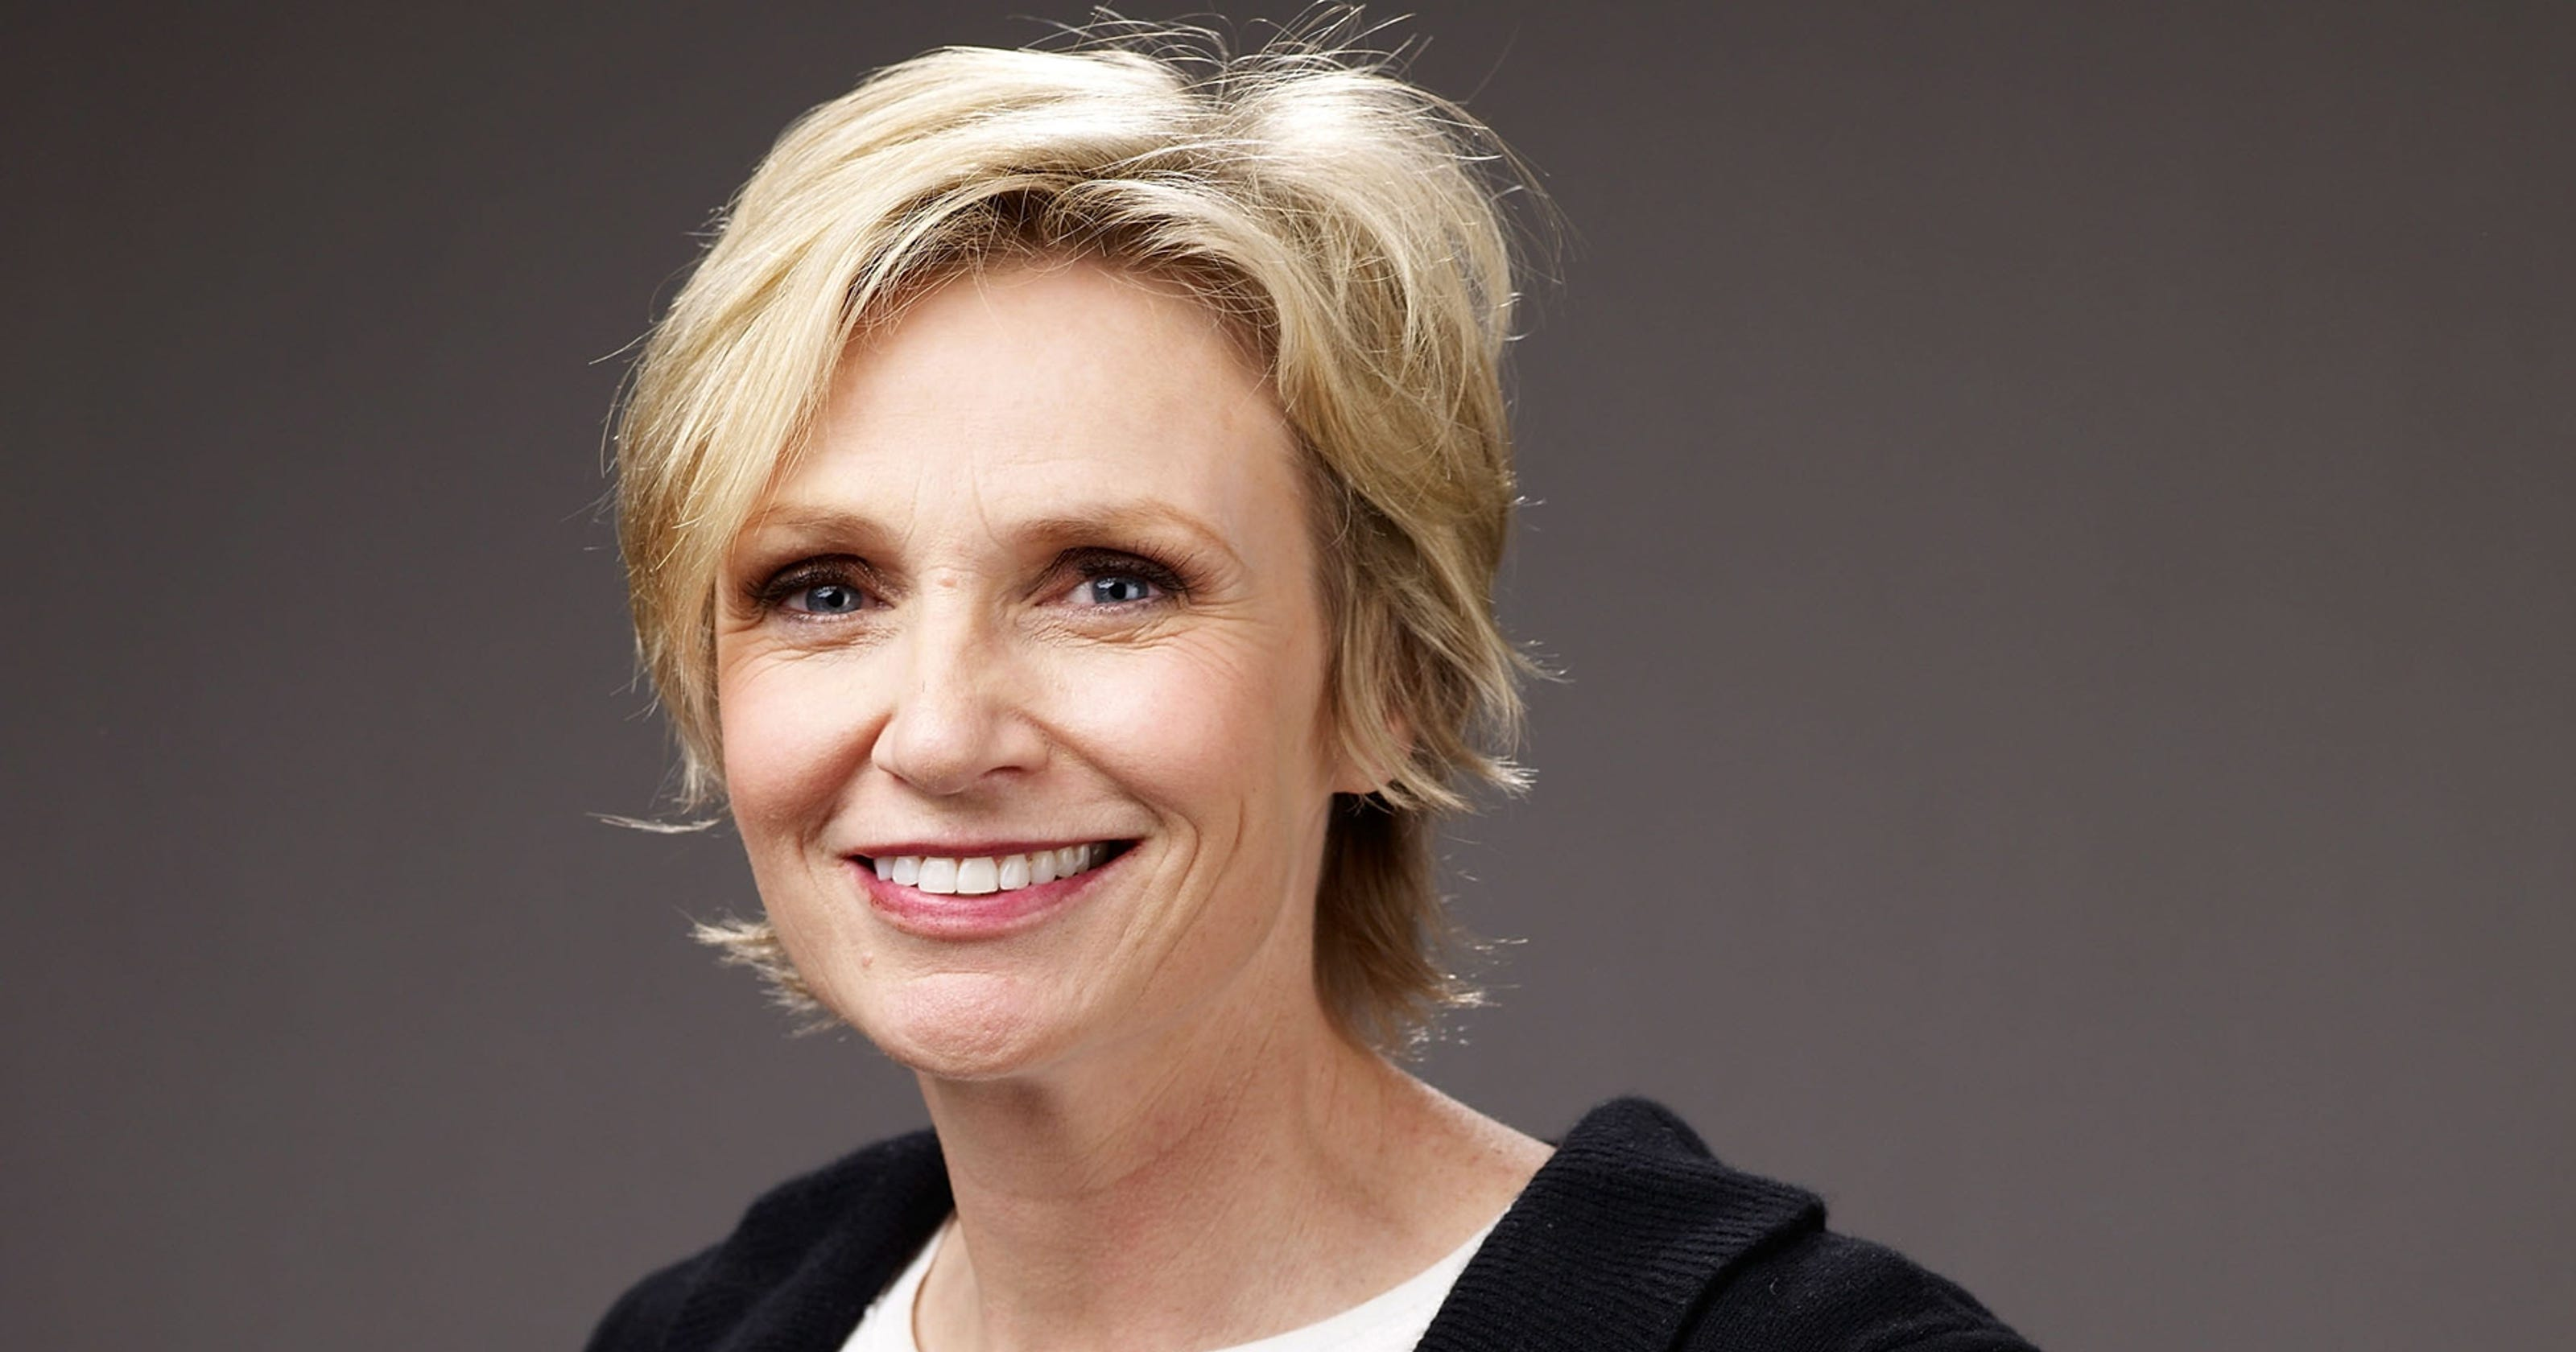 jane lynch people in the news